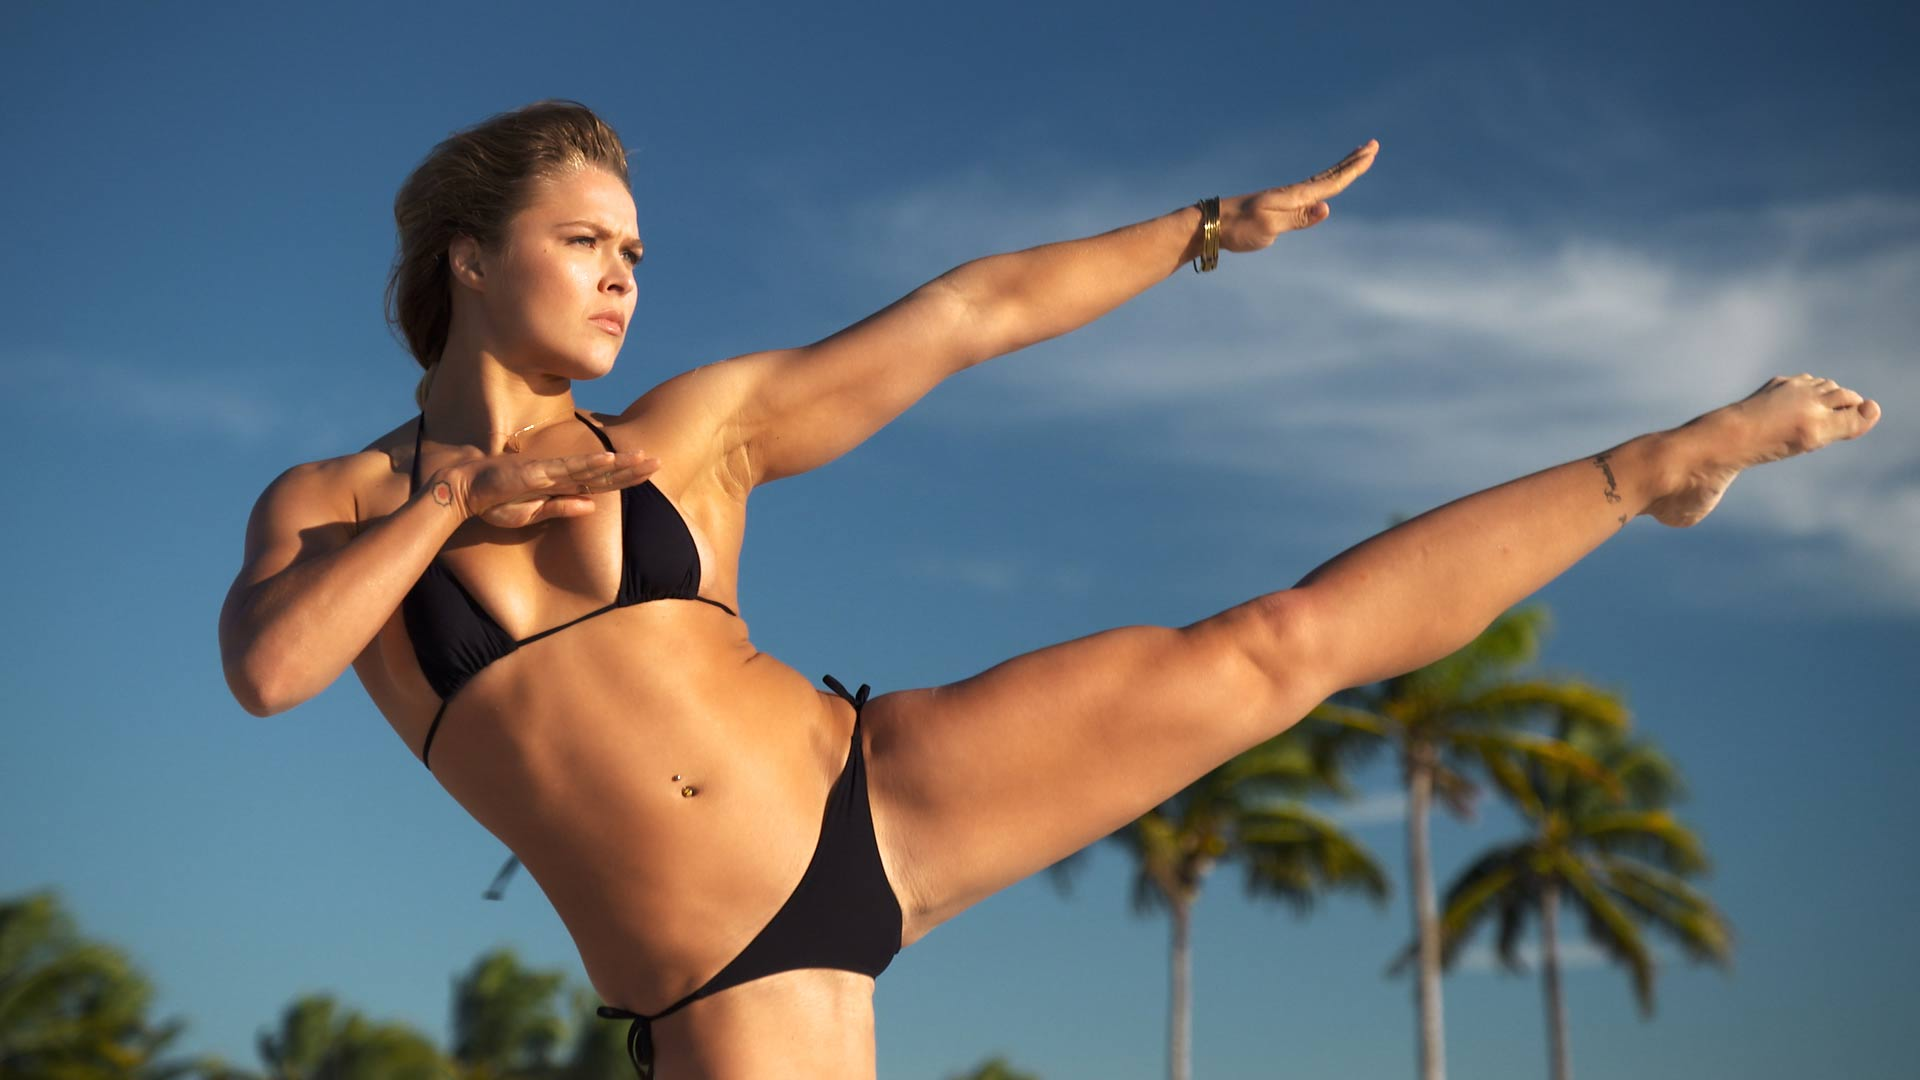 Ronda Rousey uncovered